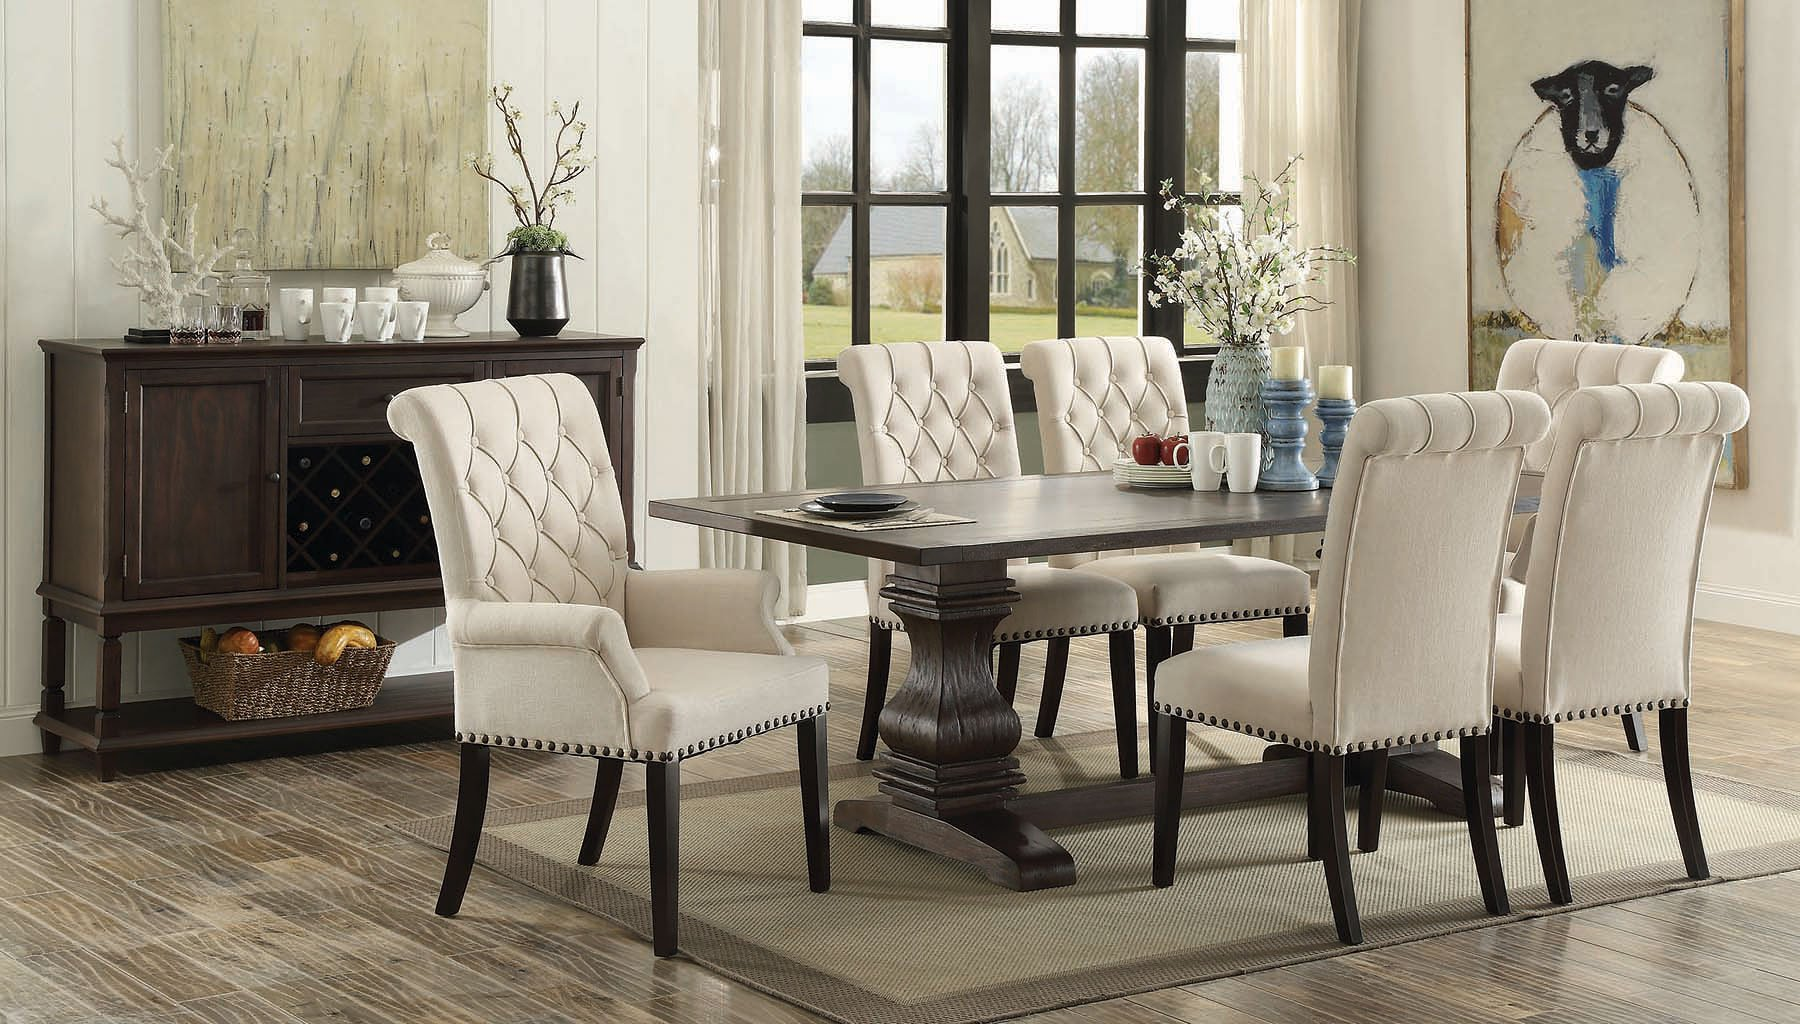 Parkins Dining Room Set Coaster Furniture, 1 Reviews